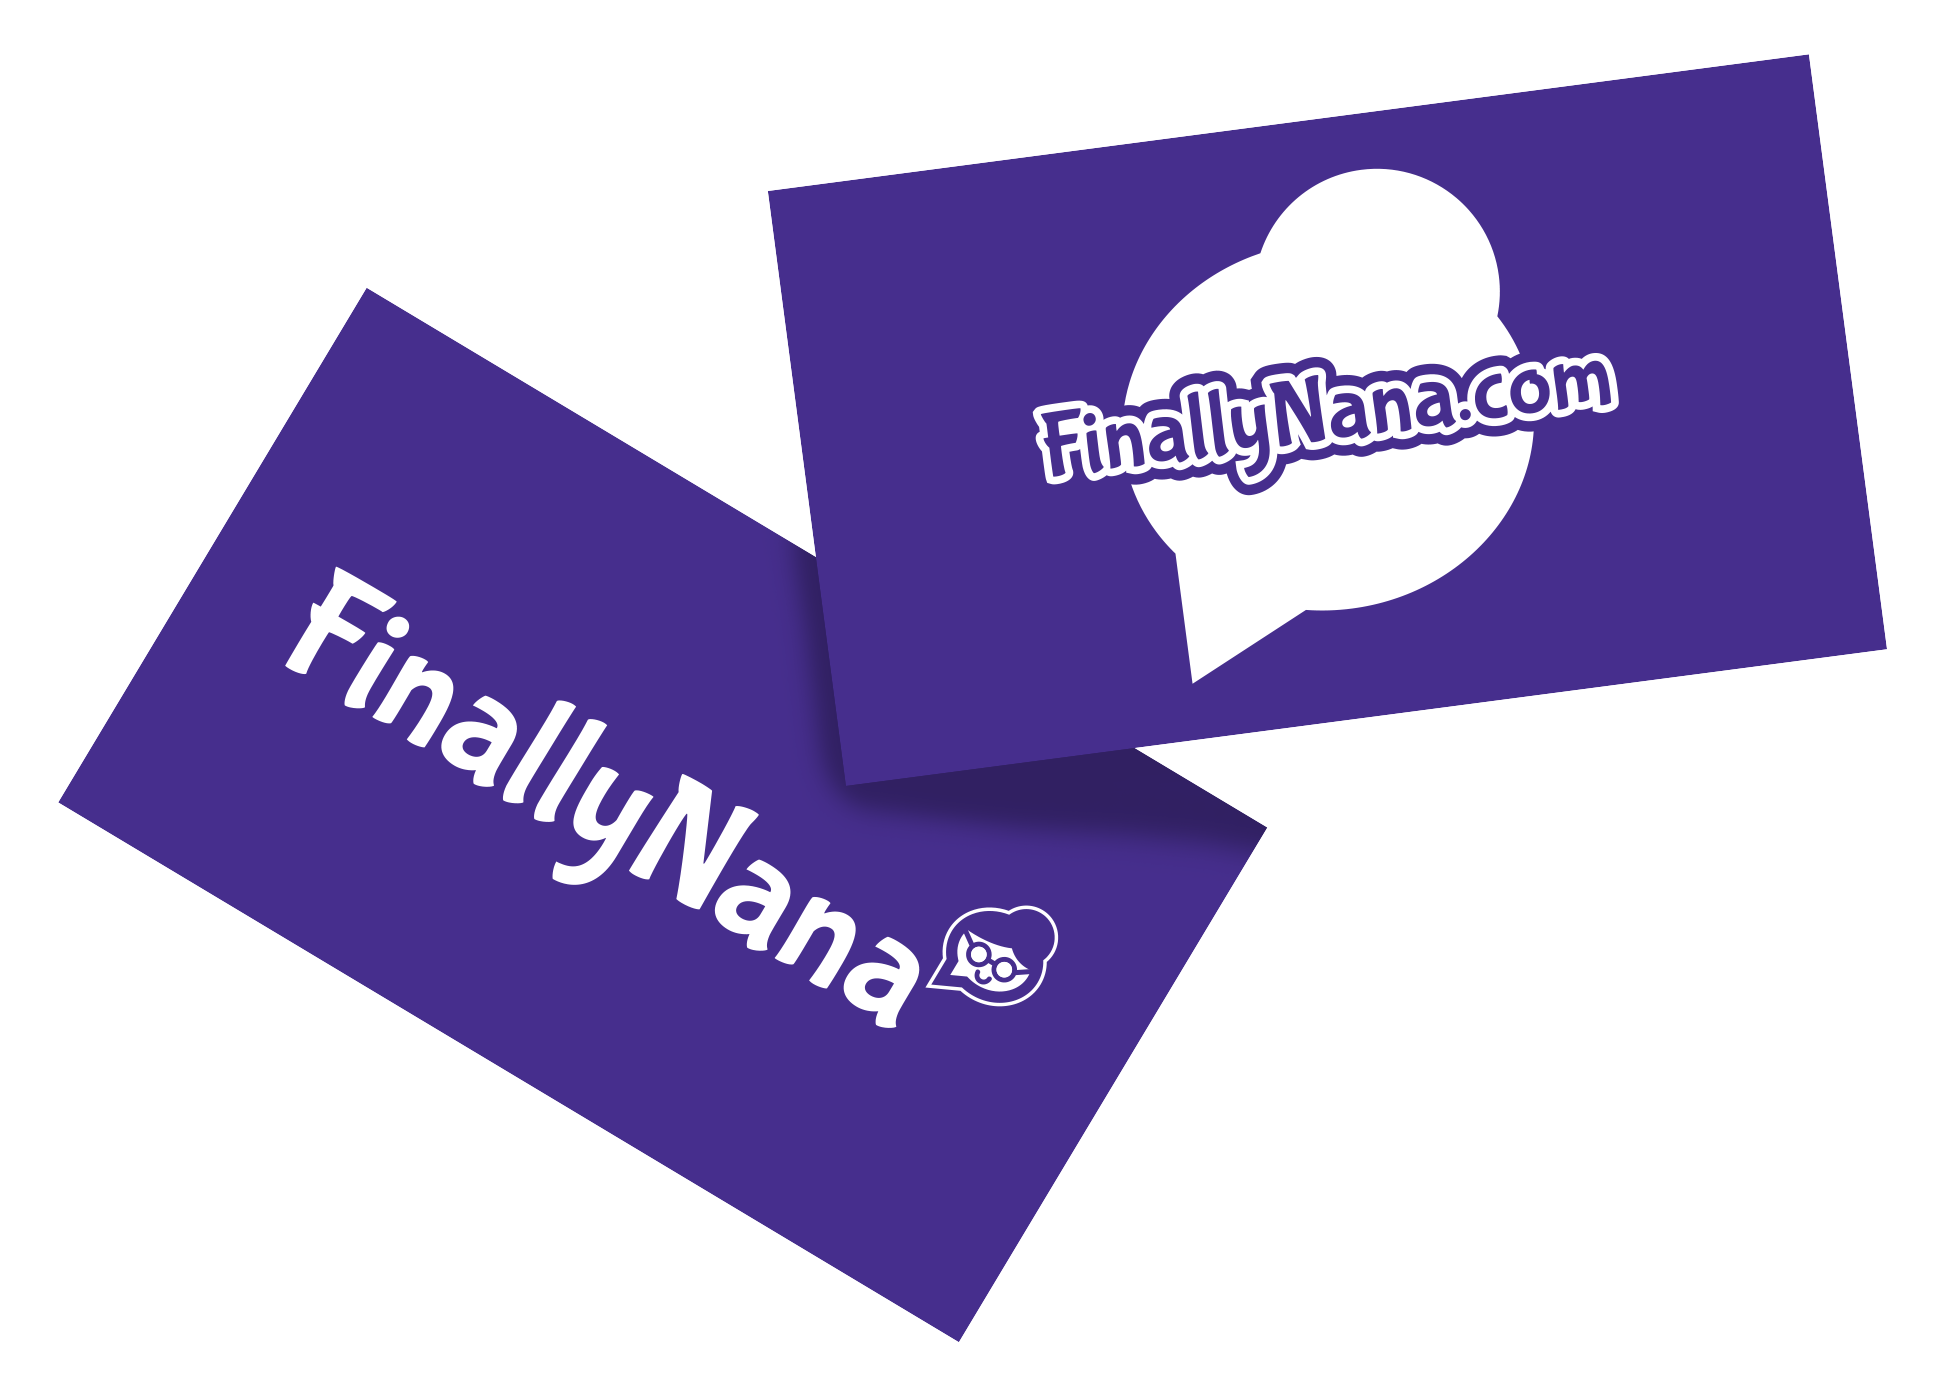 FinallyNana Business Card